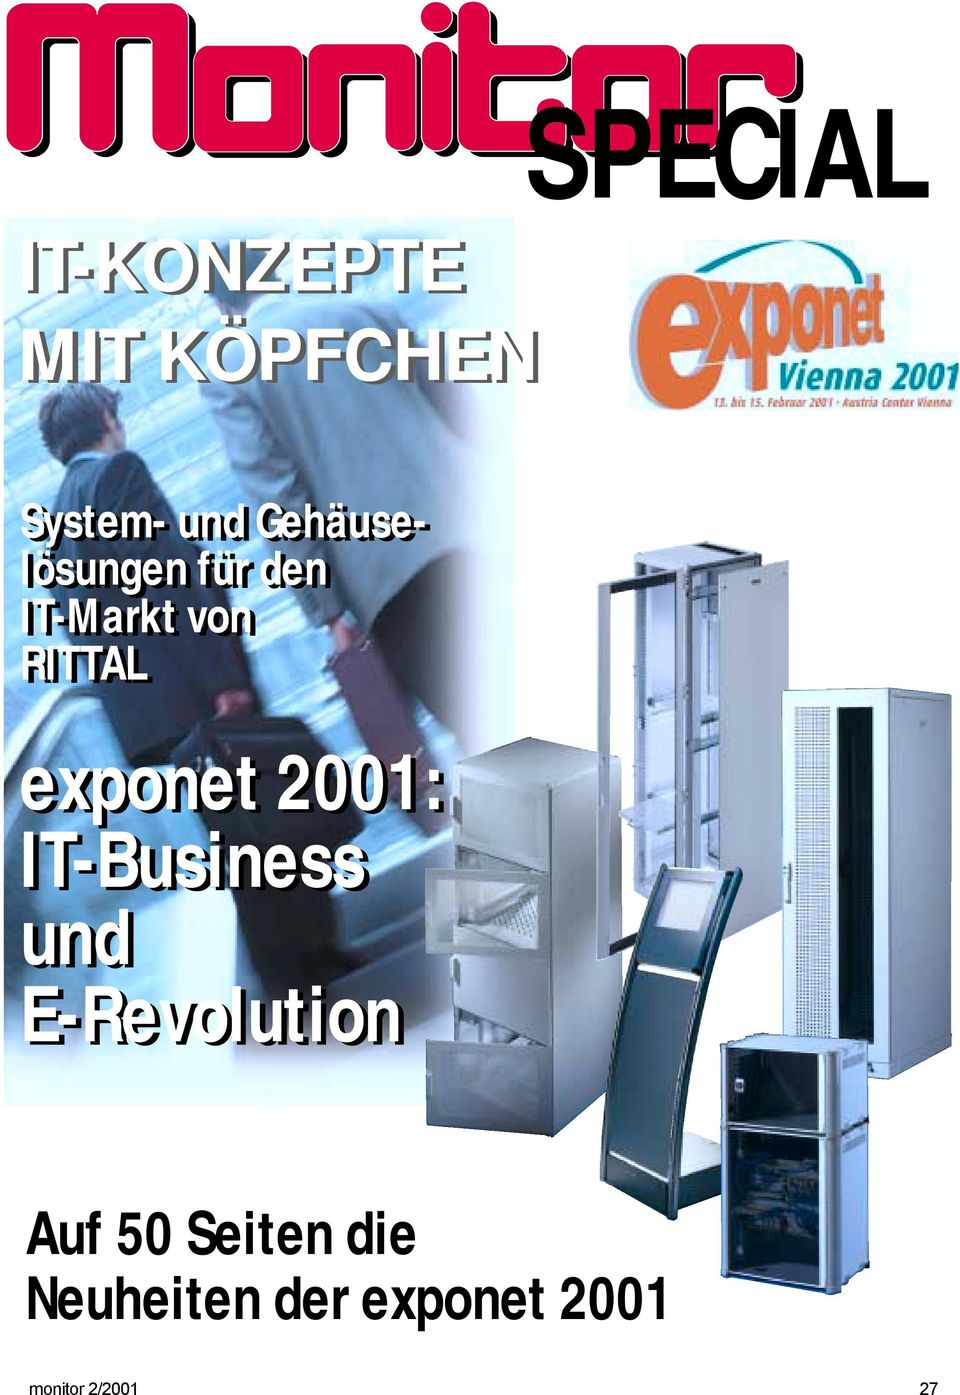 exponet 2001: IT-Business und E-Revolution Auf